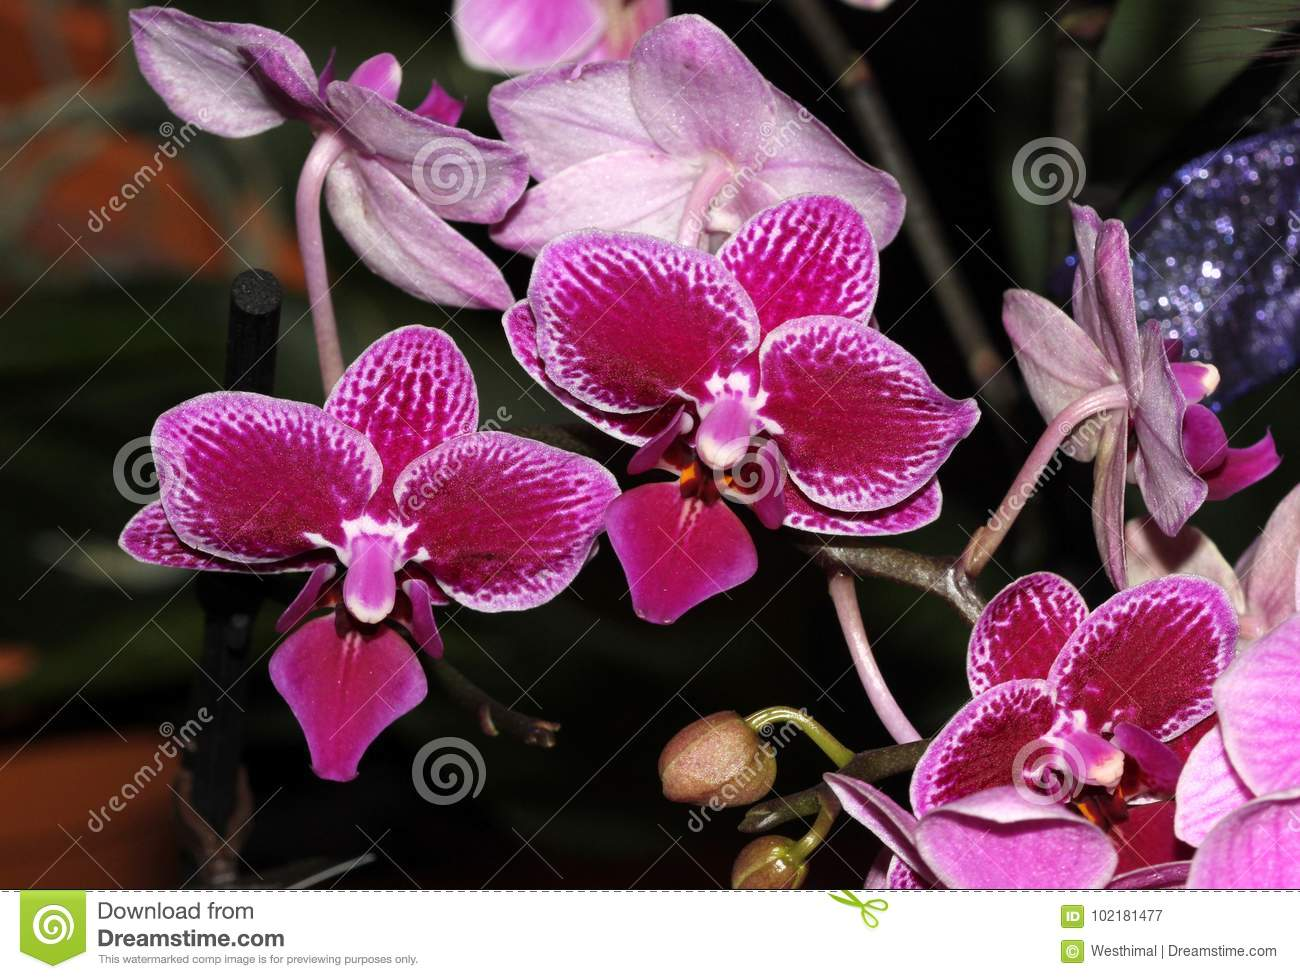 Moth orchid small flowered red cultivar, Phalaenopsis